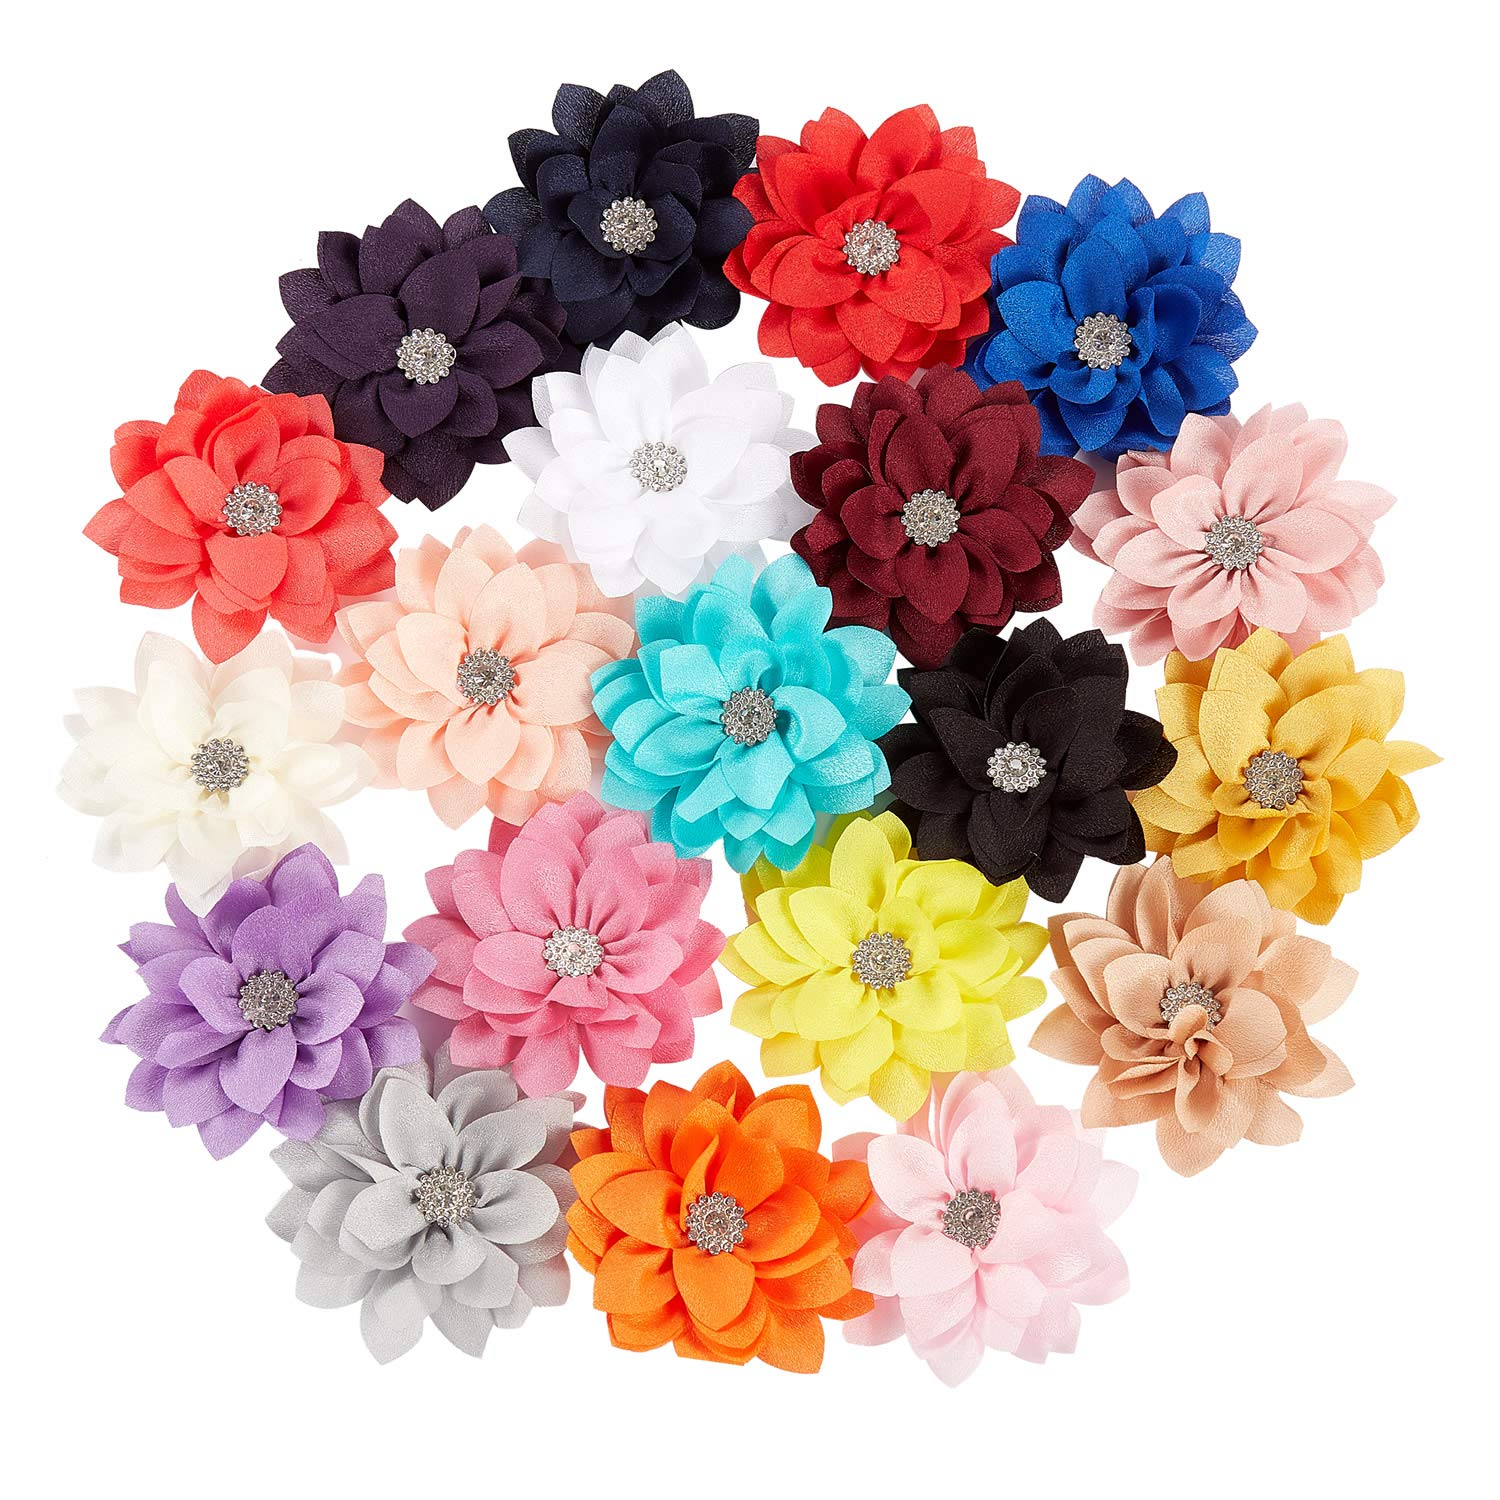 inSowni 20 Pack Alligator New products world's highest quality popular Hair Chiffon Clips Barrettes Flowe 55% OFF Big